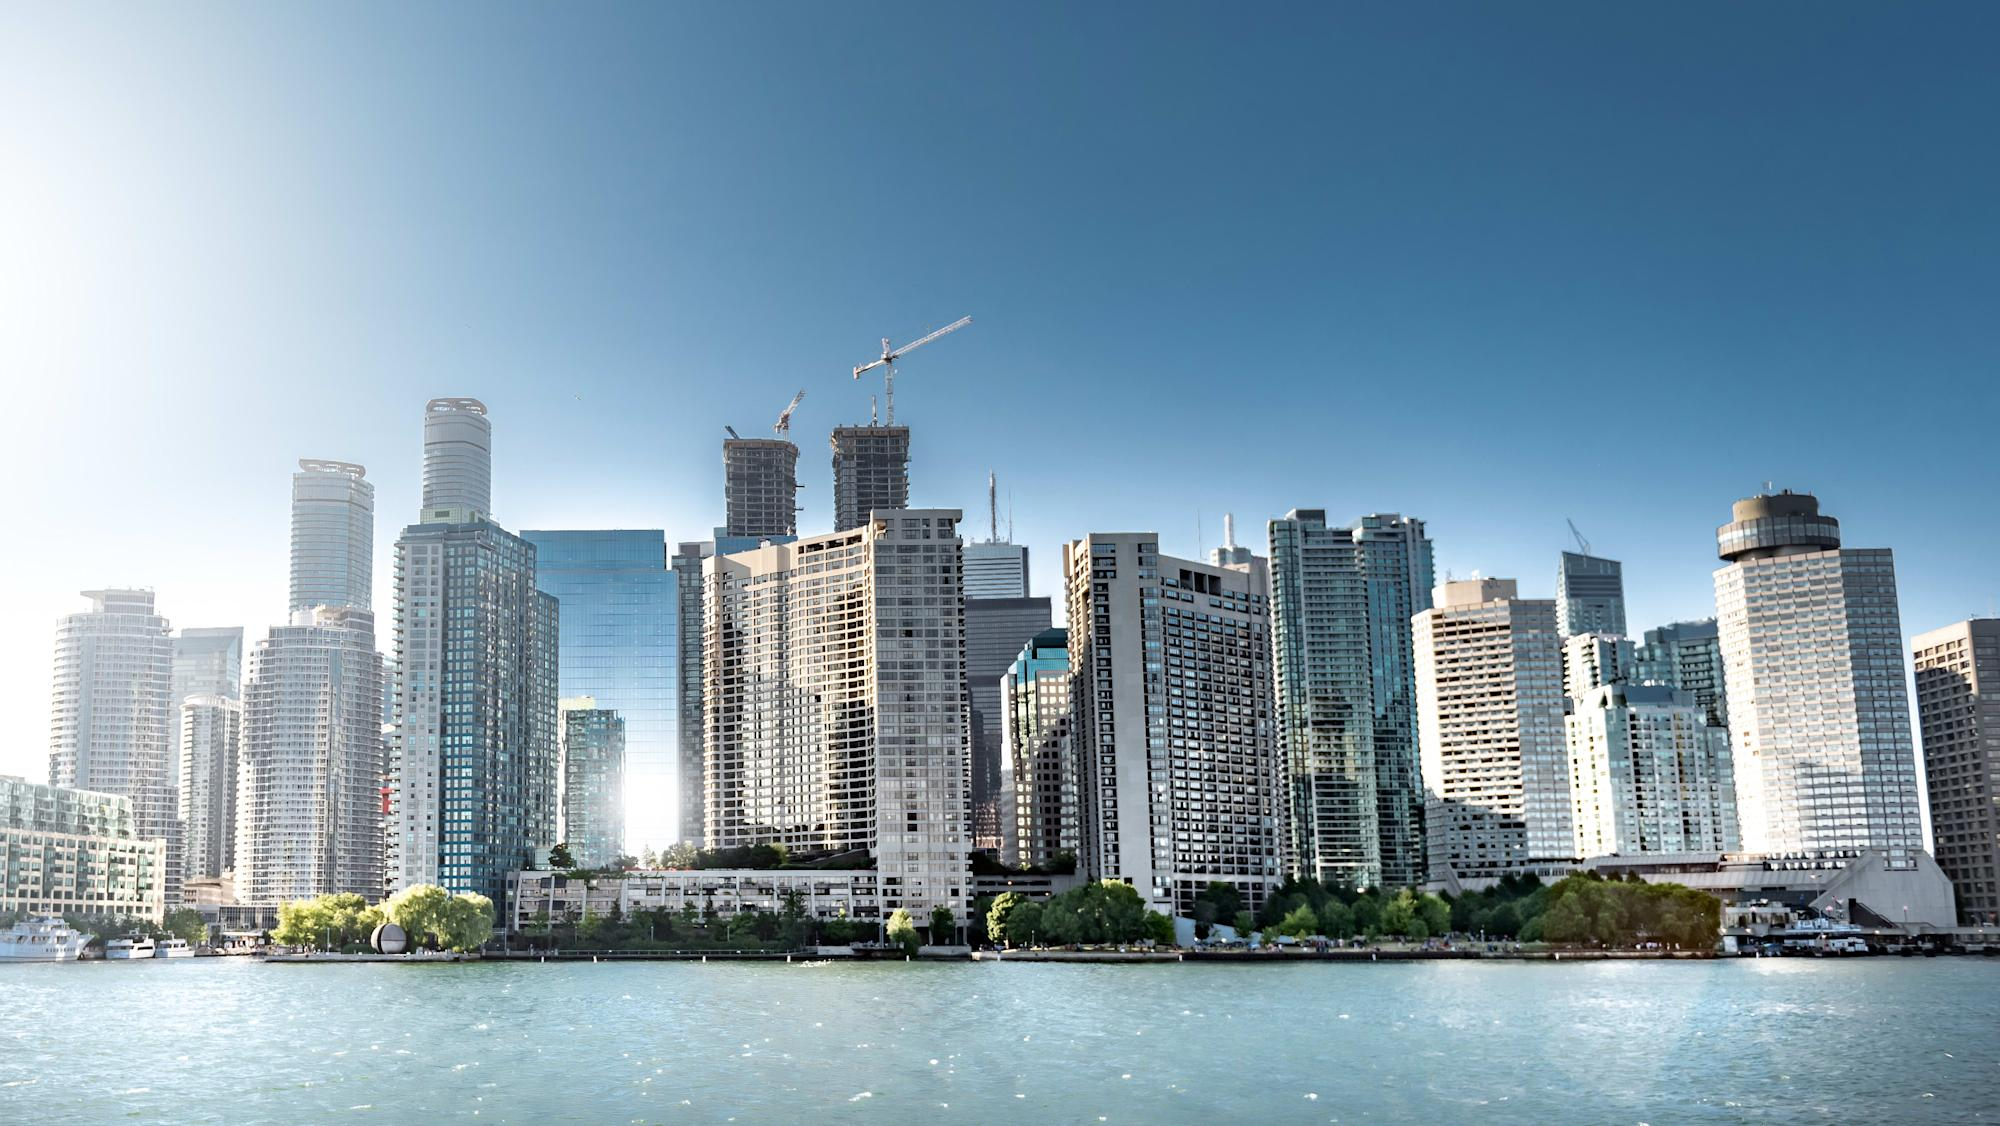 Canada's housing market: Toronto and Vancouver mirror each other